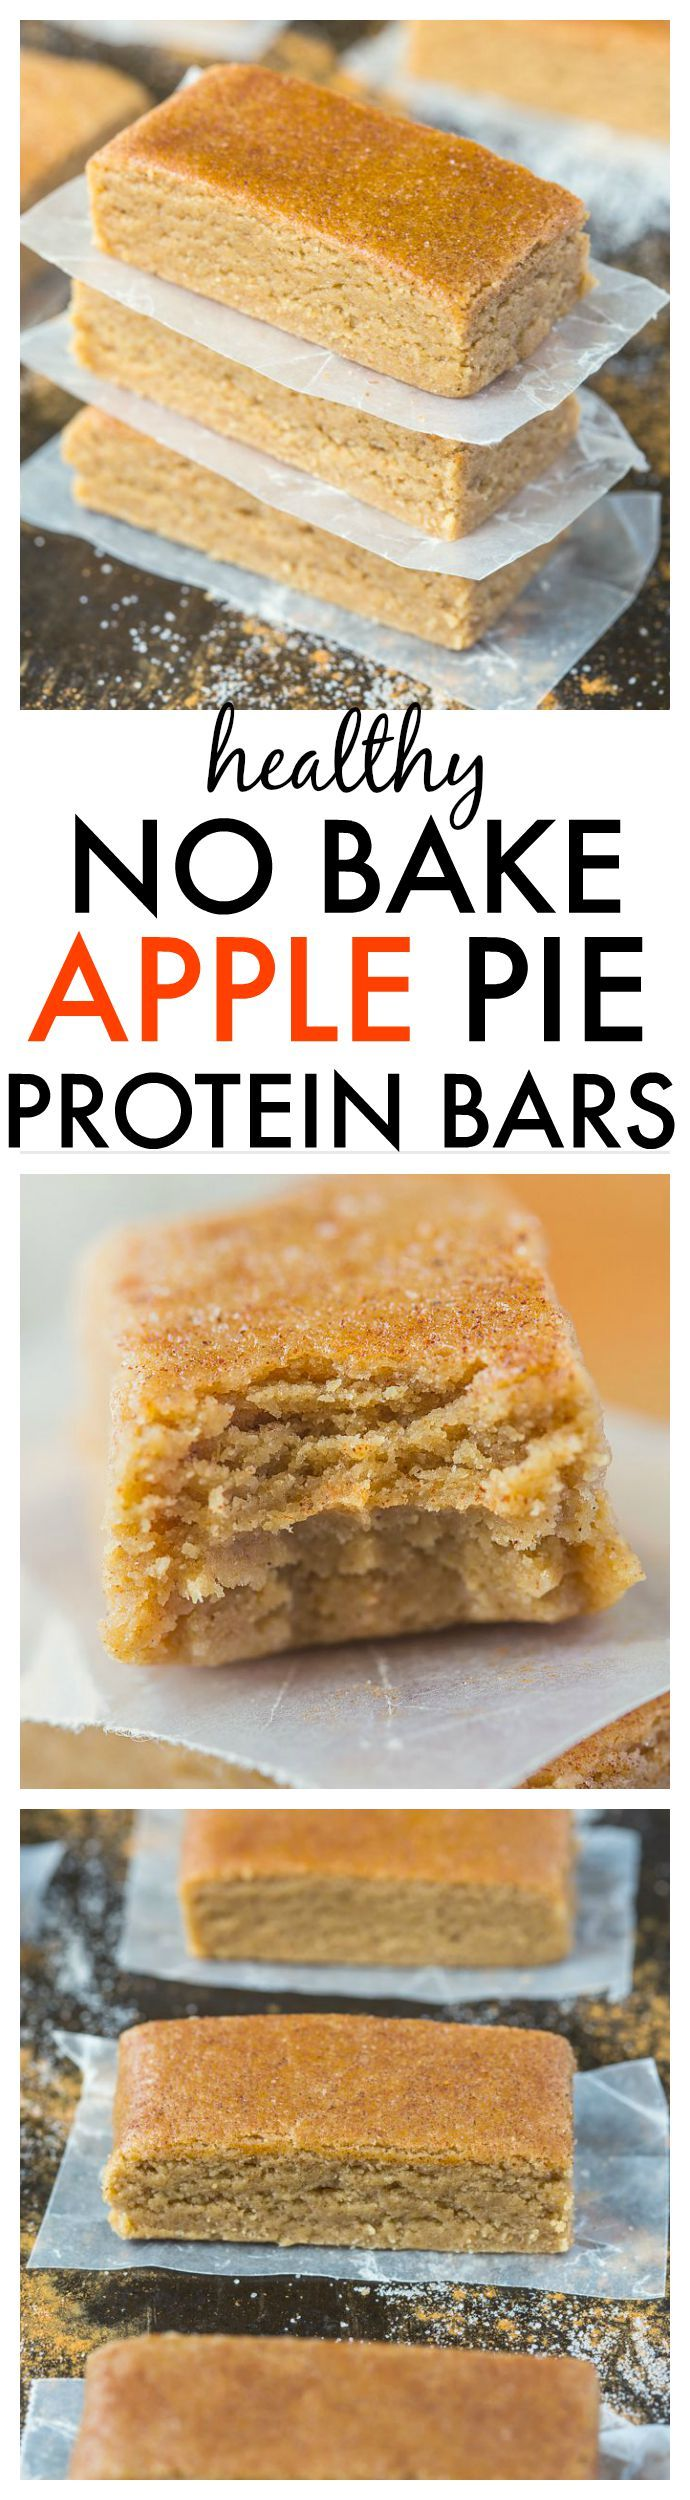 Healthy No Bake Apple Pie Protein Bars-Just 10 minutes and 1 bowl to whip these…